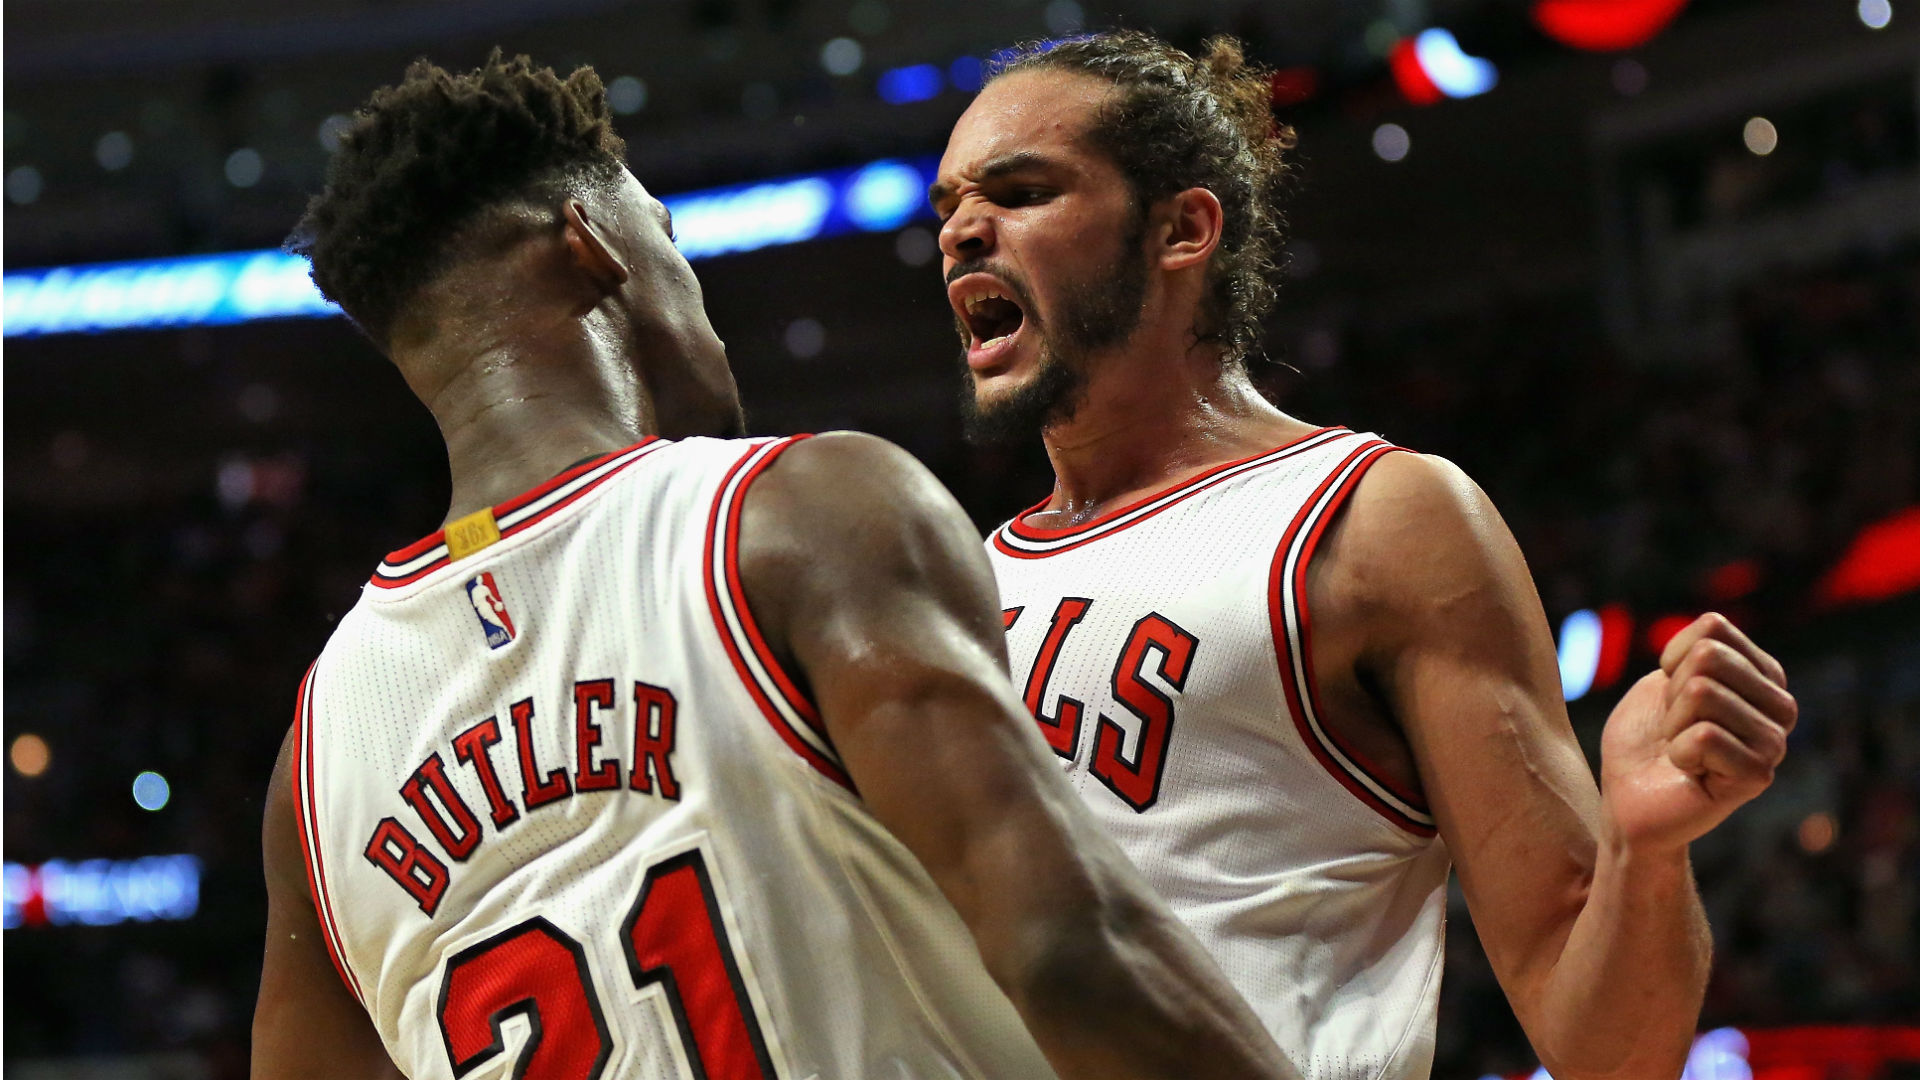 NBA playoffs lines and picks — Bulls have brooms ready in early Saturday games